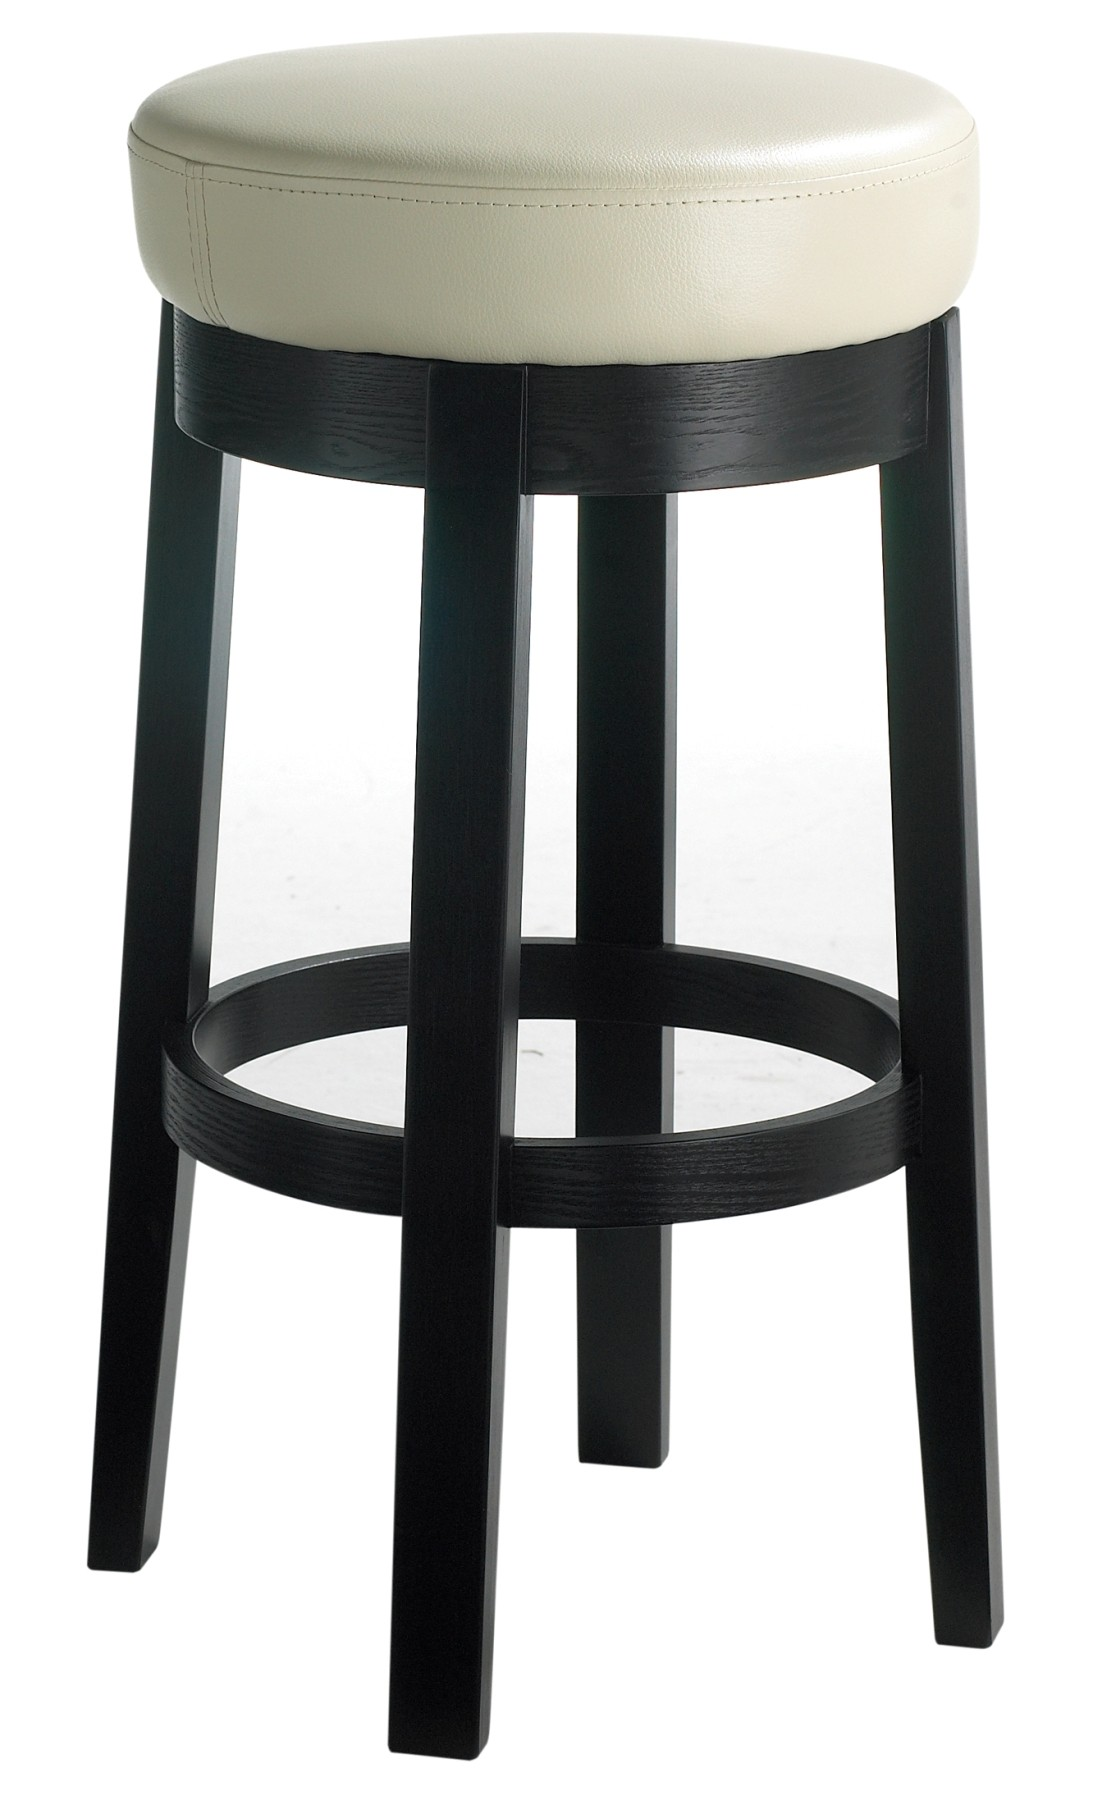 Cedric Cream Swivel Barstool From Sunpan 55923 Coleman